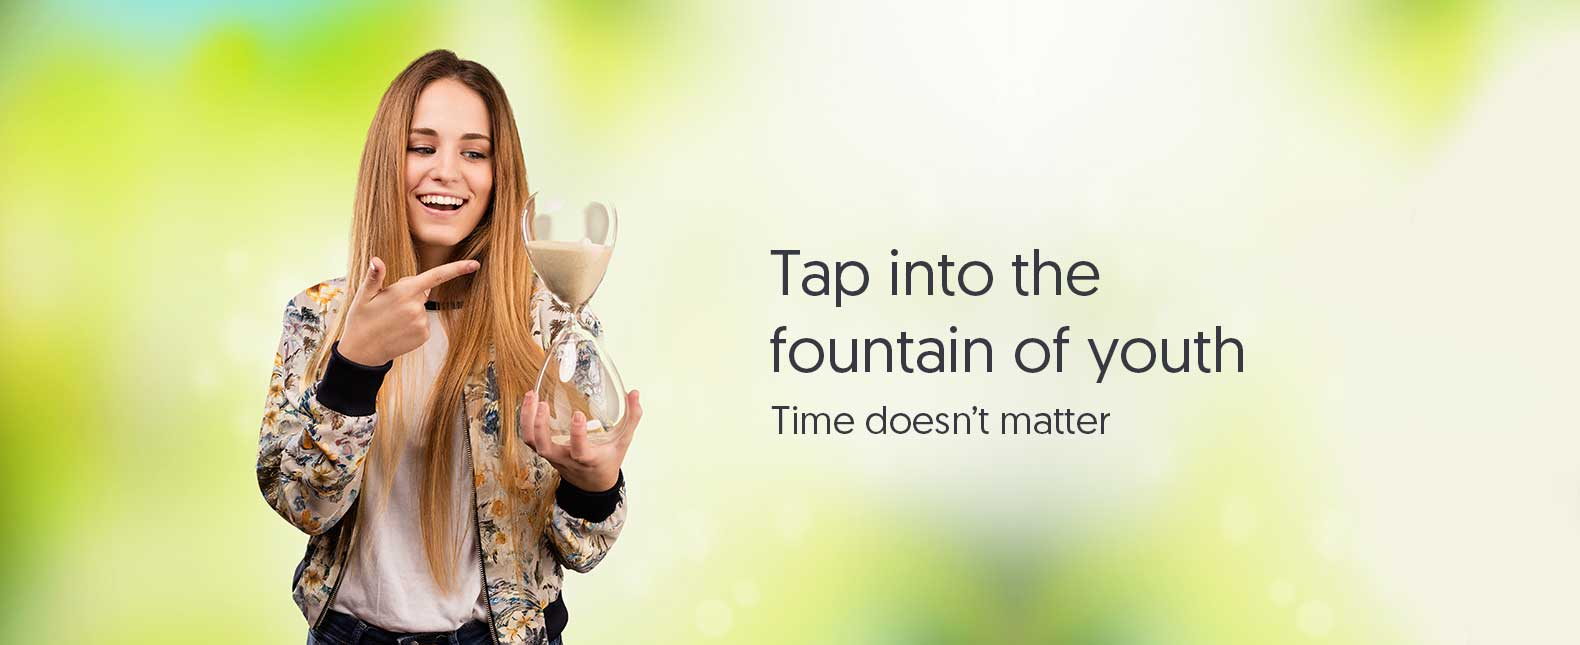 Tap into the Fountain of Youth